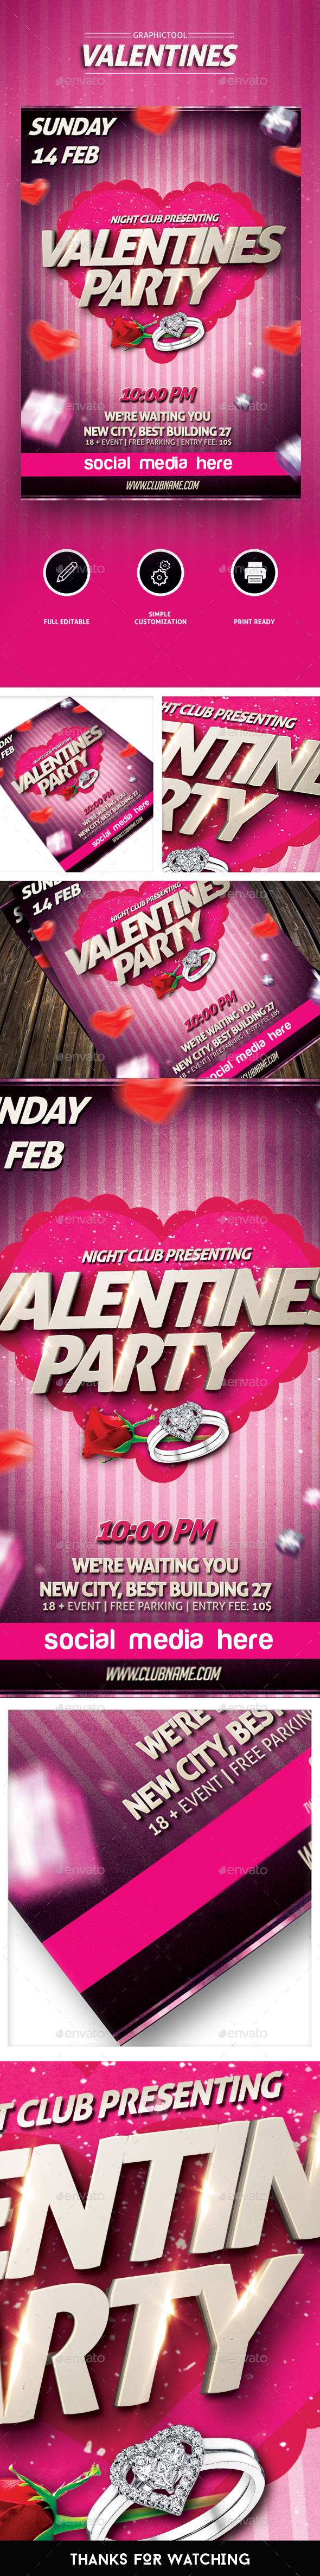 Valentine's Day Flyer/Valentines Poster - Events Flyers